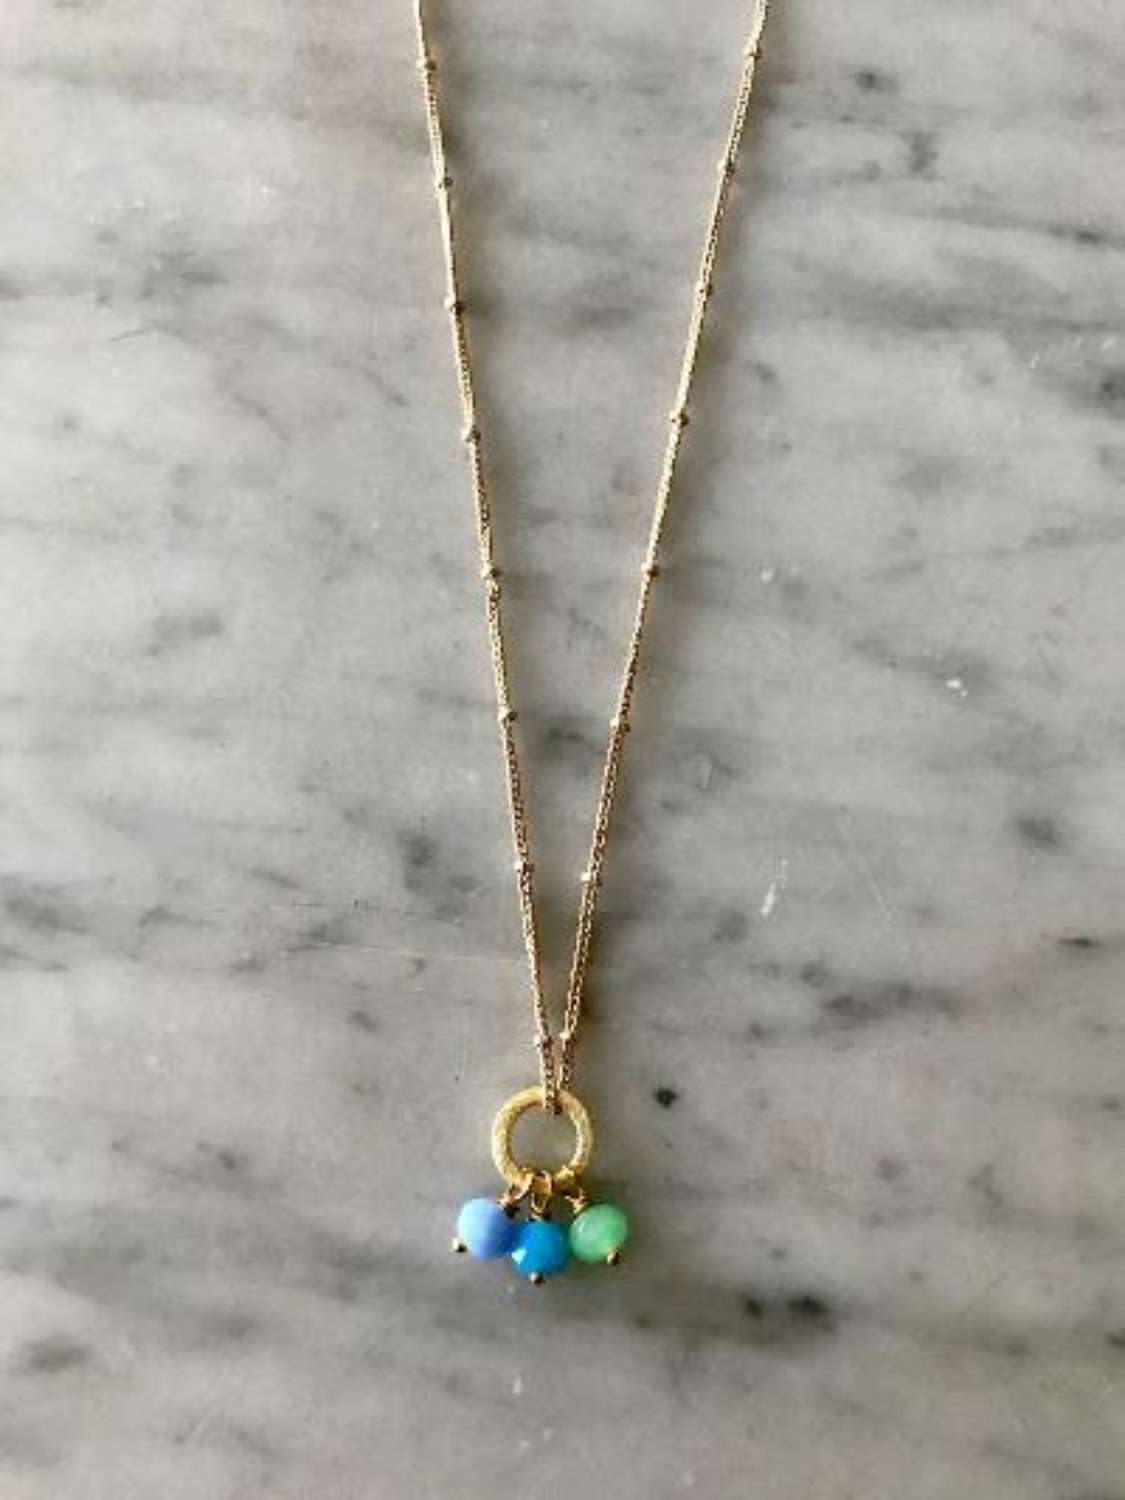 Amy necklace - blue/green